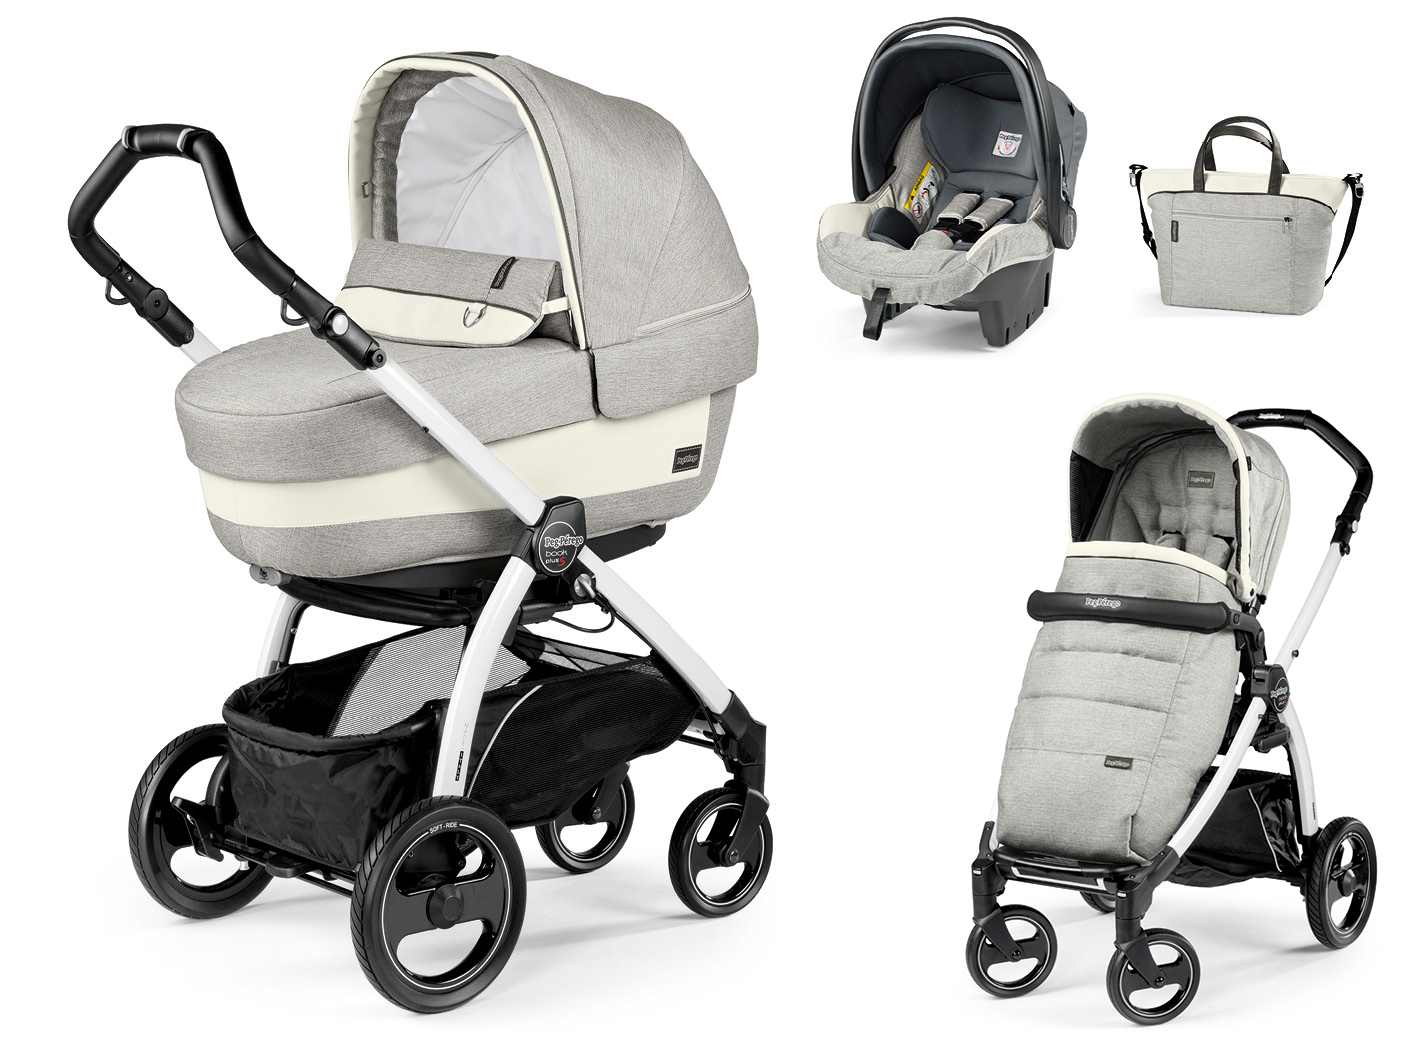 Bugaboo Fox 2 in addition B00STG5Z4I likewise Babyzen as well Ultimate Baby Strollers likewise Stroll Air my duo double stroller. on all one car seat stroller